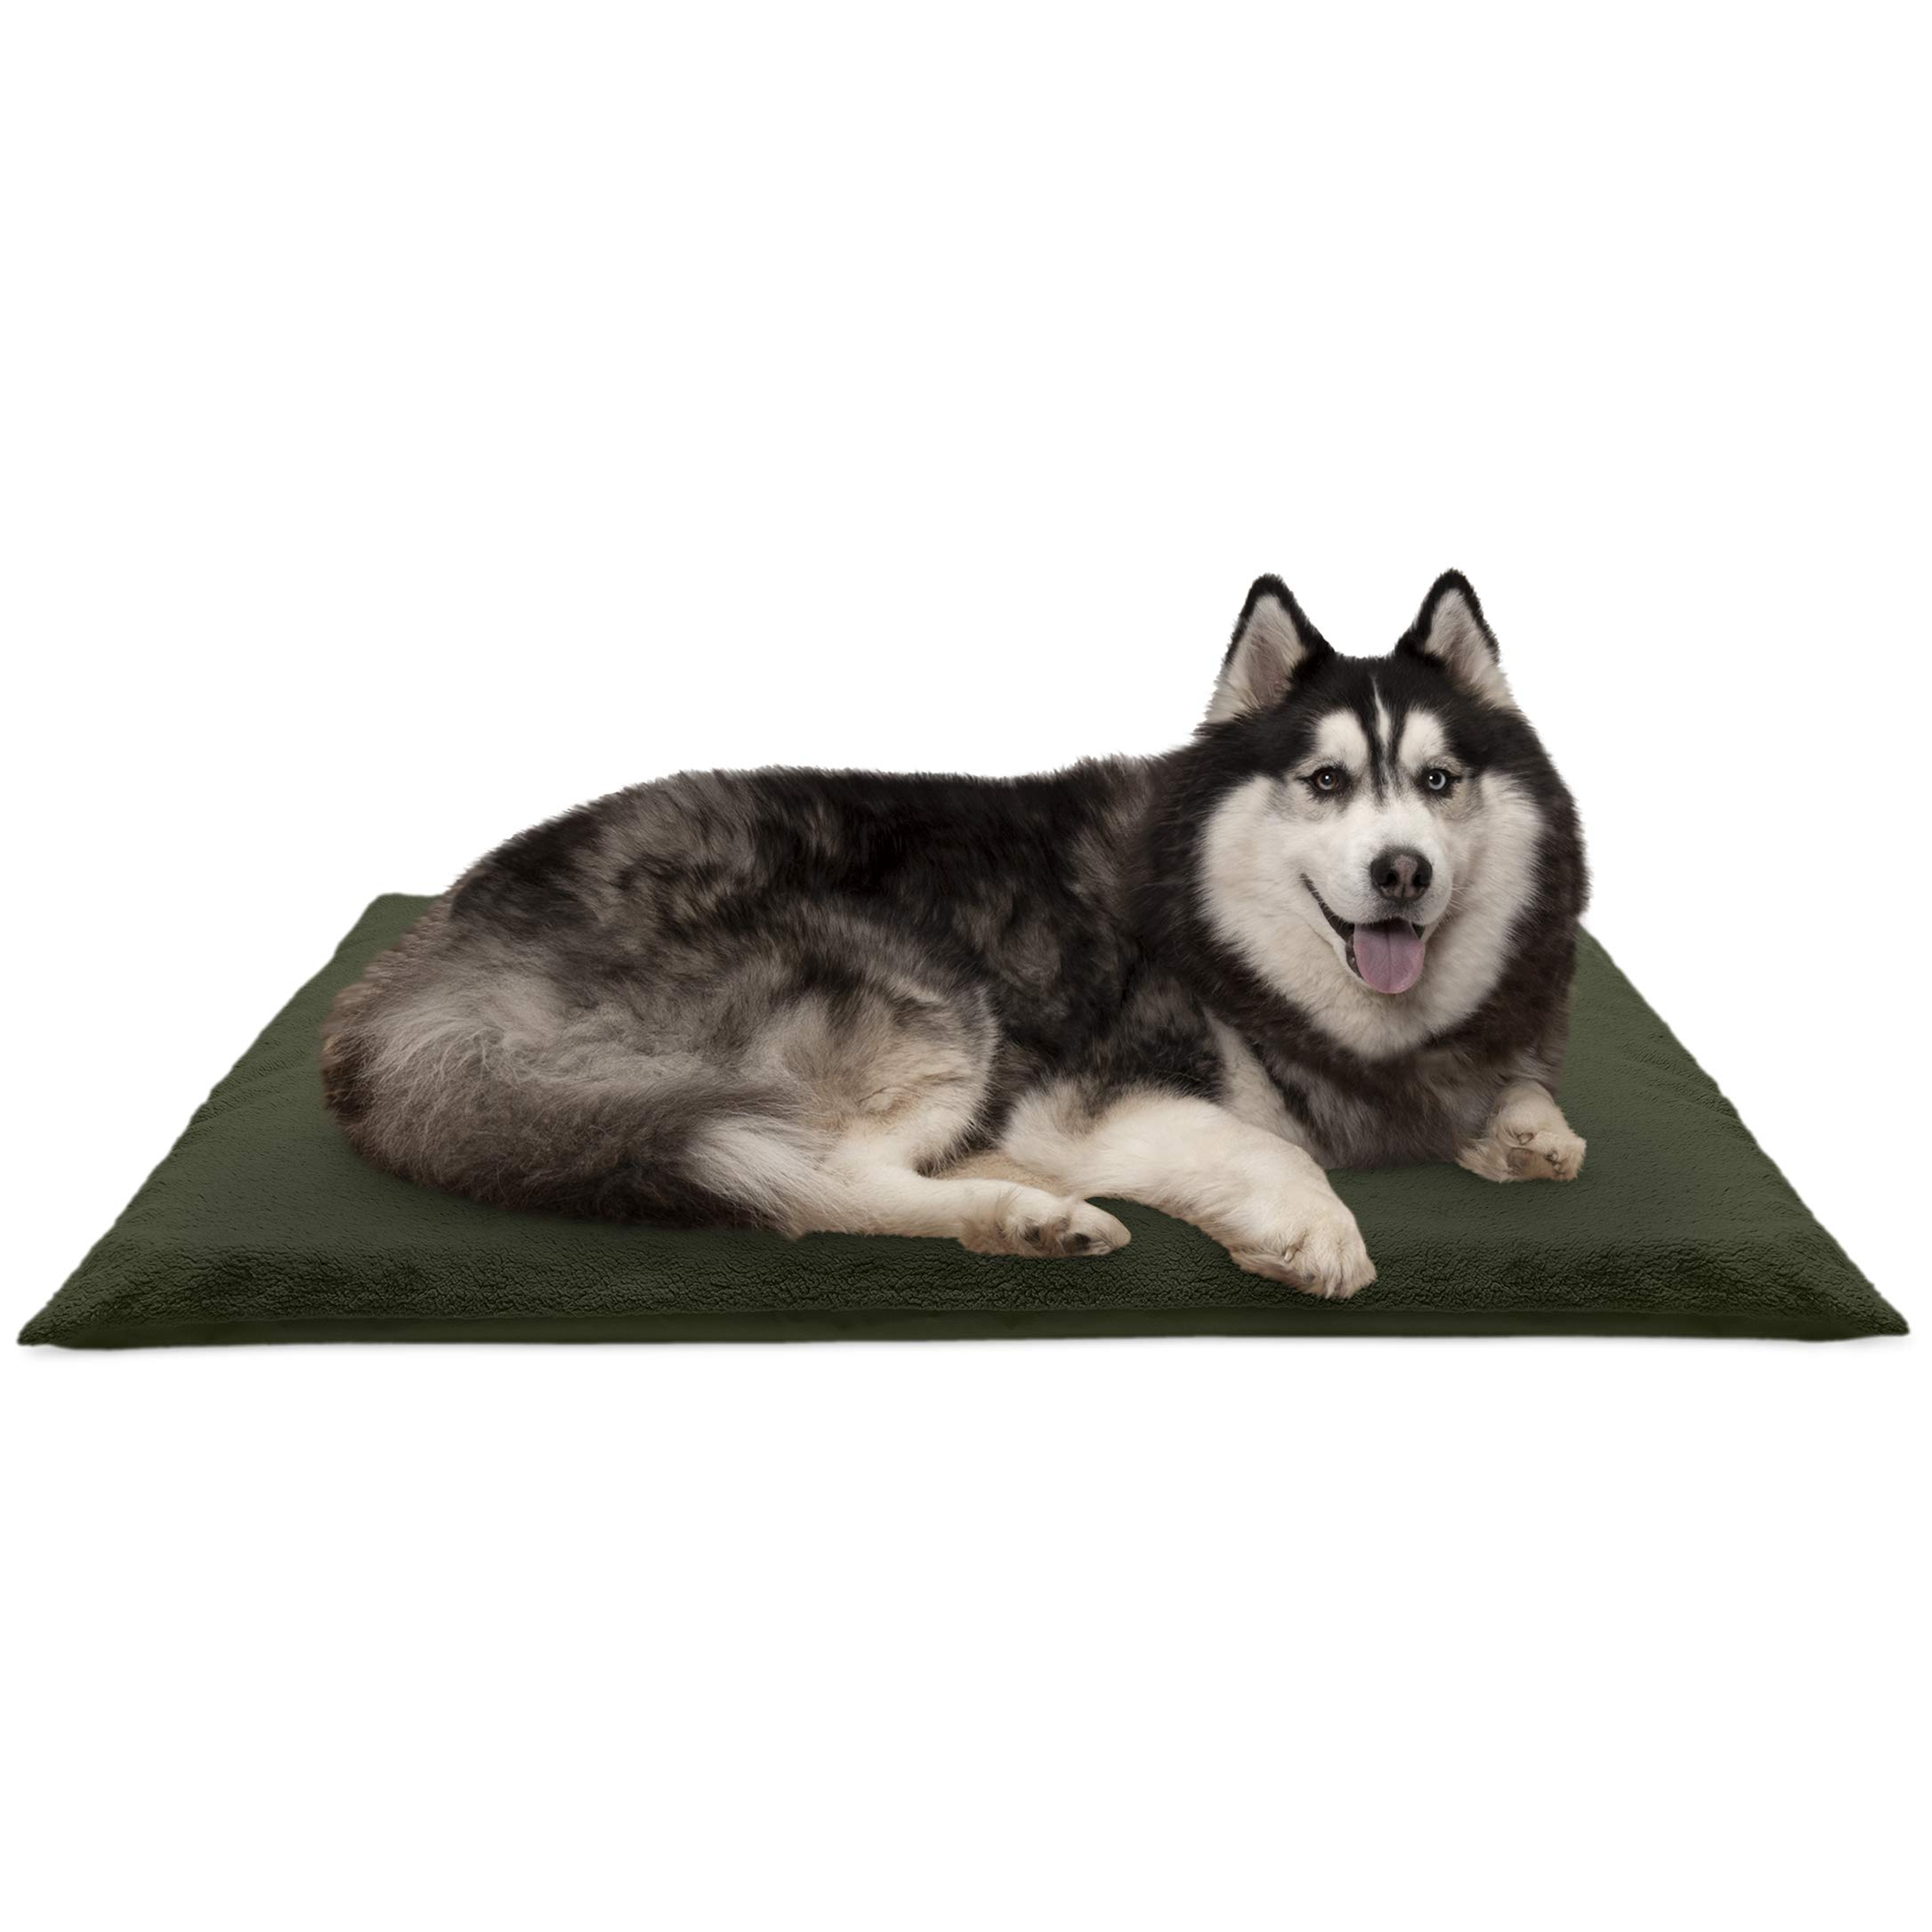 Furhaven Pet Dog Bed | Terry 2-Inch Orthopedic Step-On Mat Foam Mattress Pad Pet Bed w/ Removable Cover for Dogs & Cats, Forest, Jumbo by Furhaven